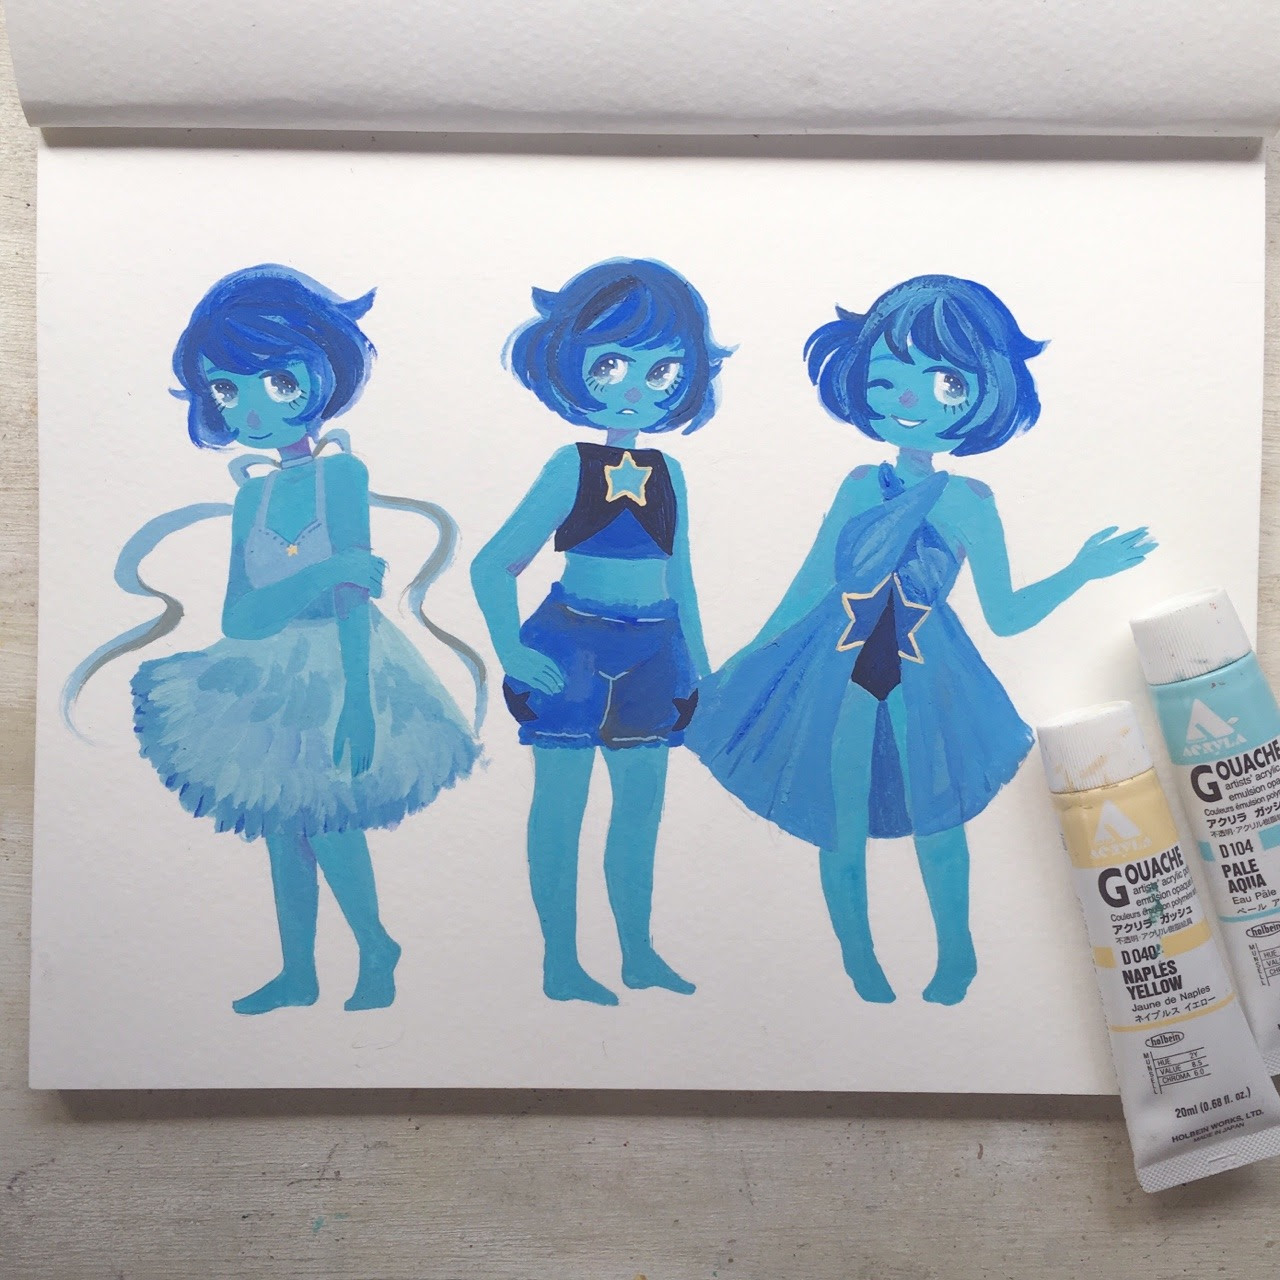 Lapis doodles! I want to see more of her~